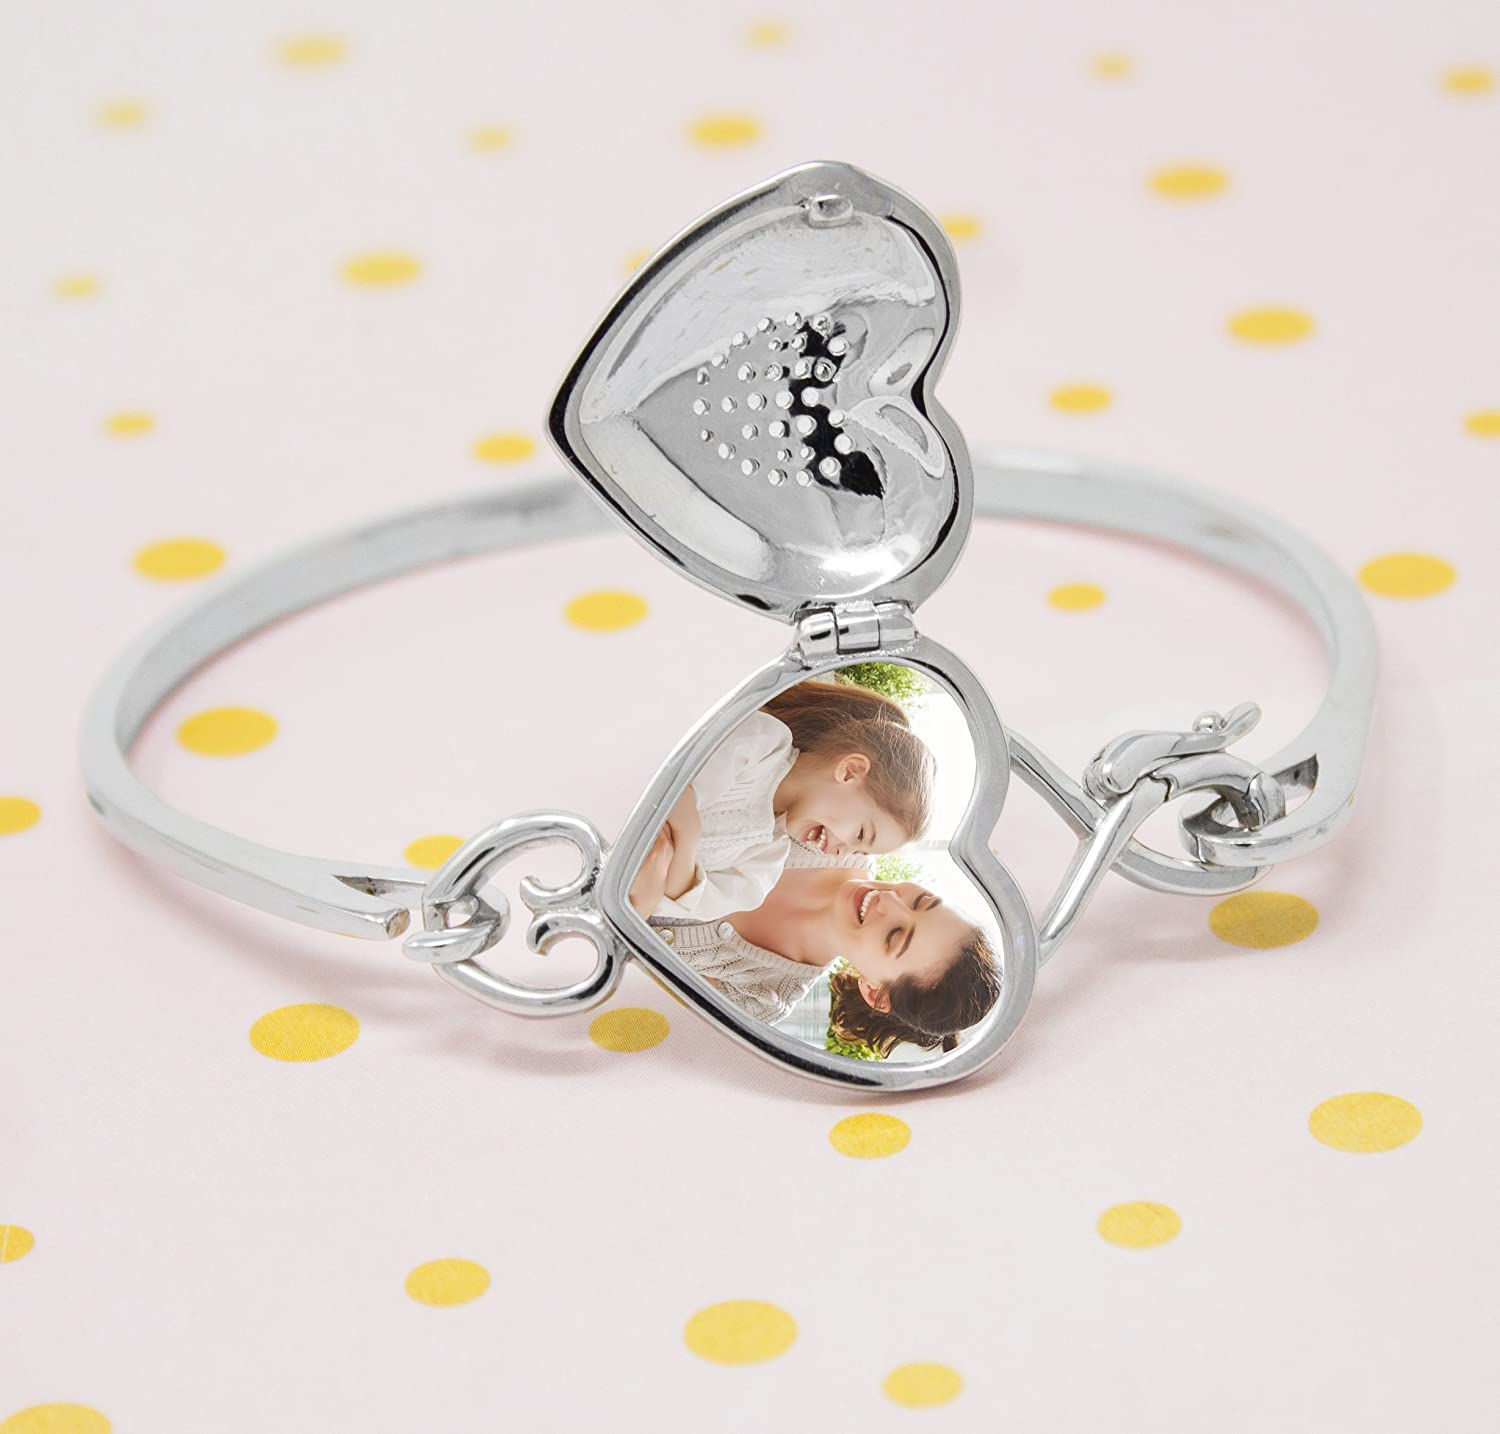 With You Lockets-Sterling Silver-Custom Photo Heart Locket-Bangle Bracelet-That Holds Pictures-The Annabelle